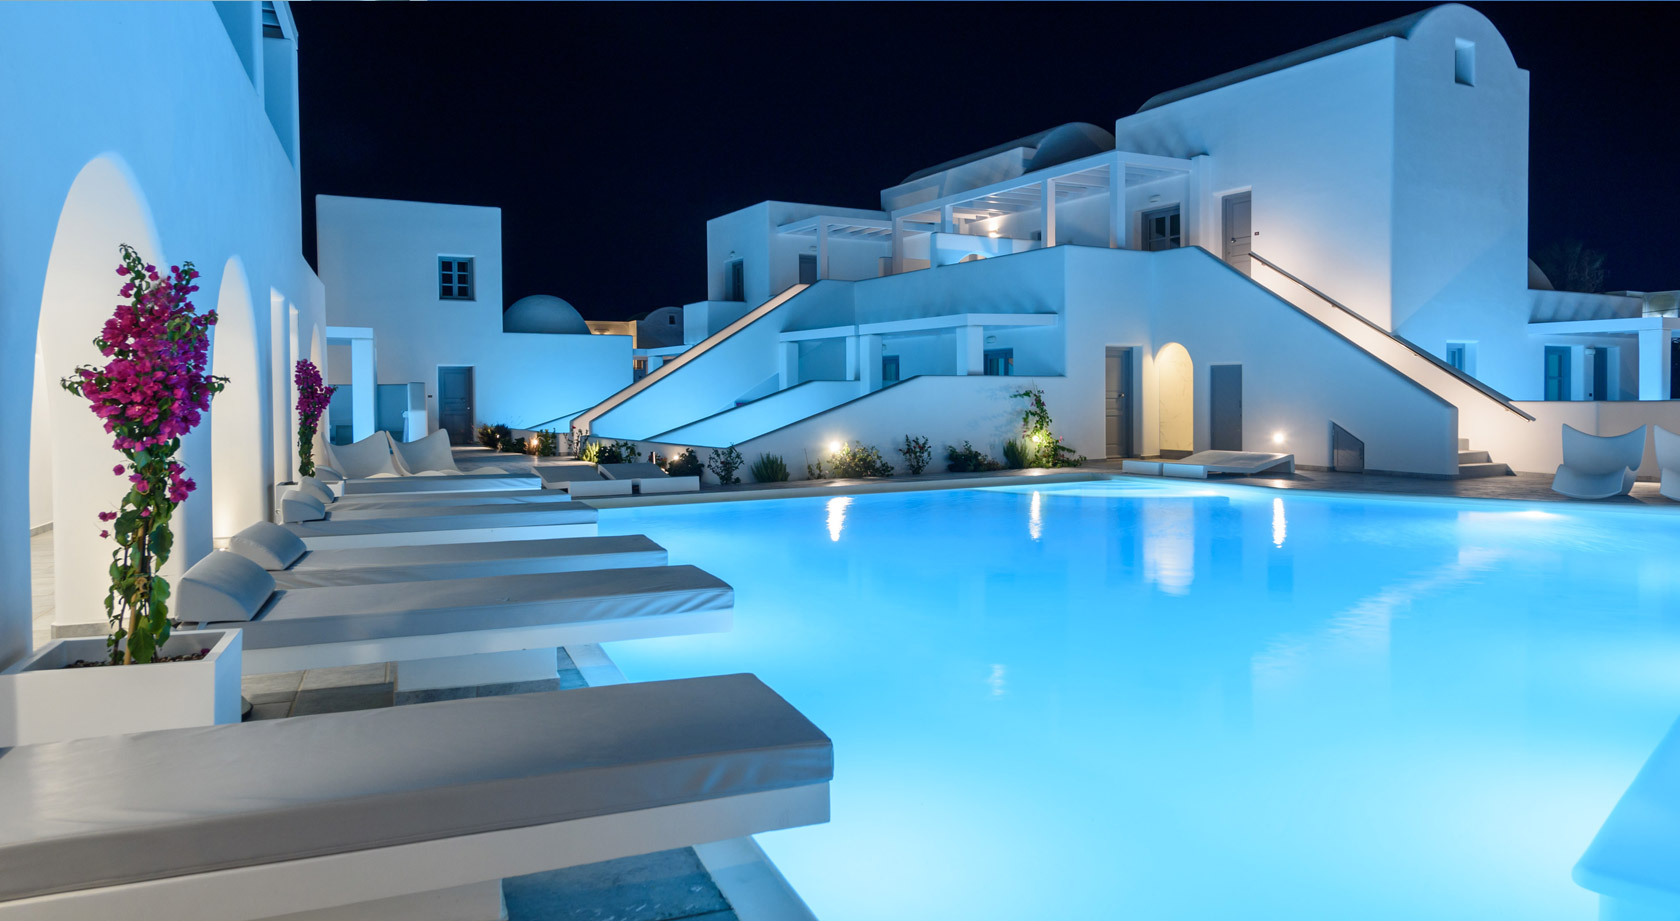 Santorini hotel antoperla luxury hotel spa santorini hotel for Small luxury spa hotels